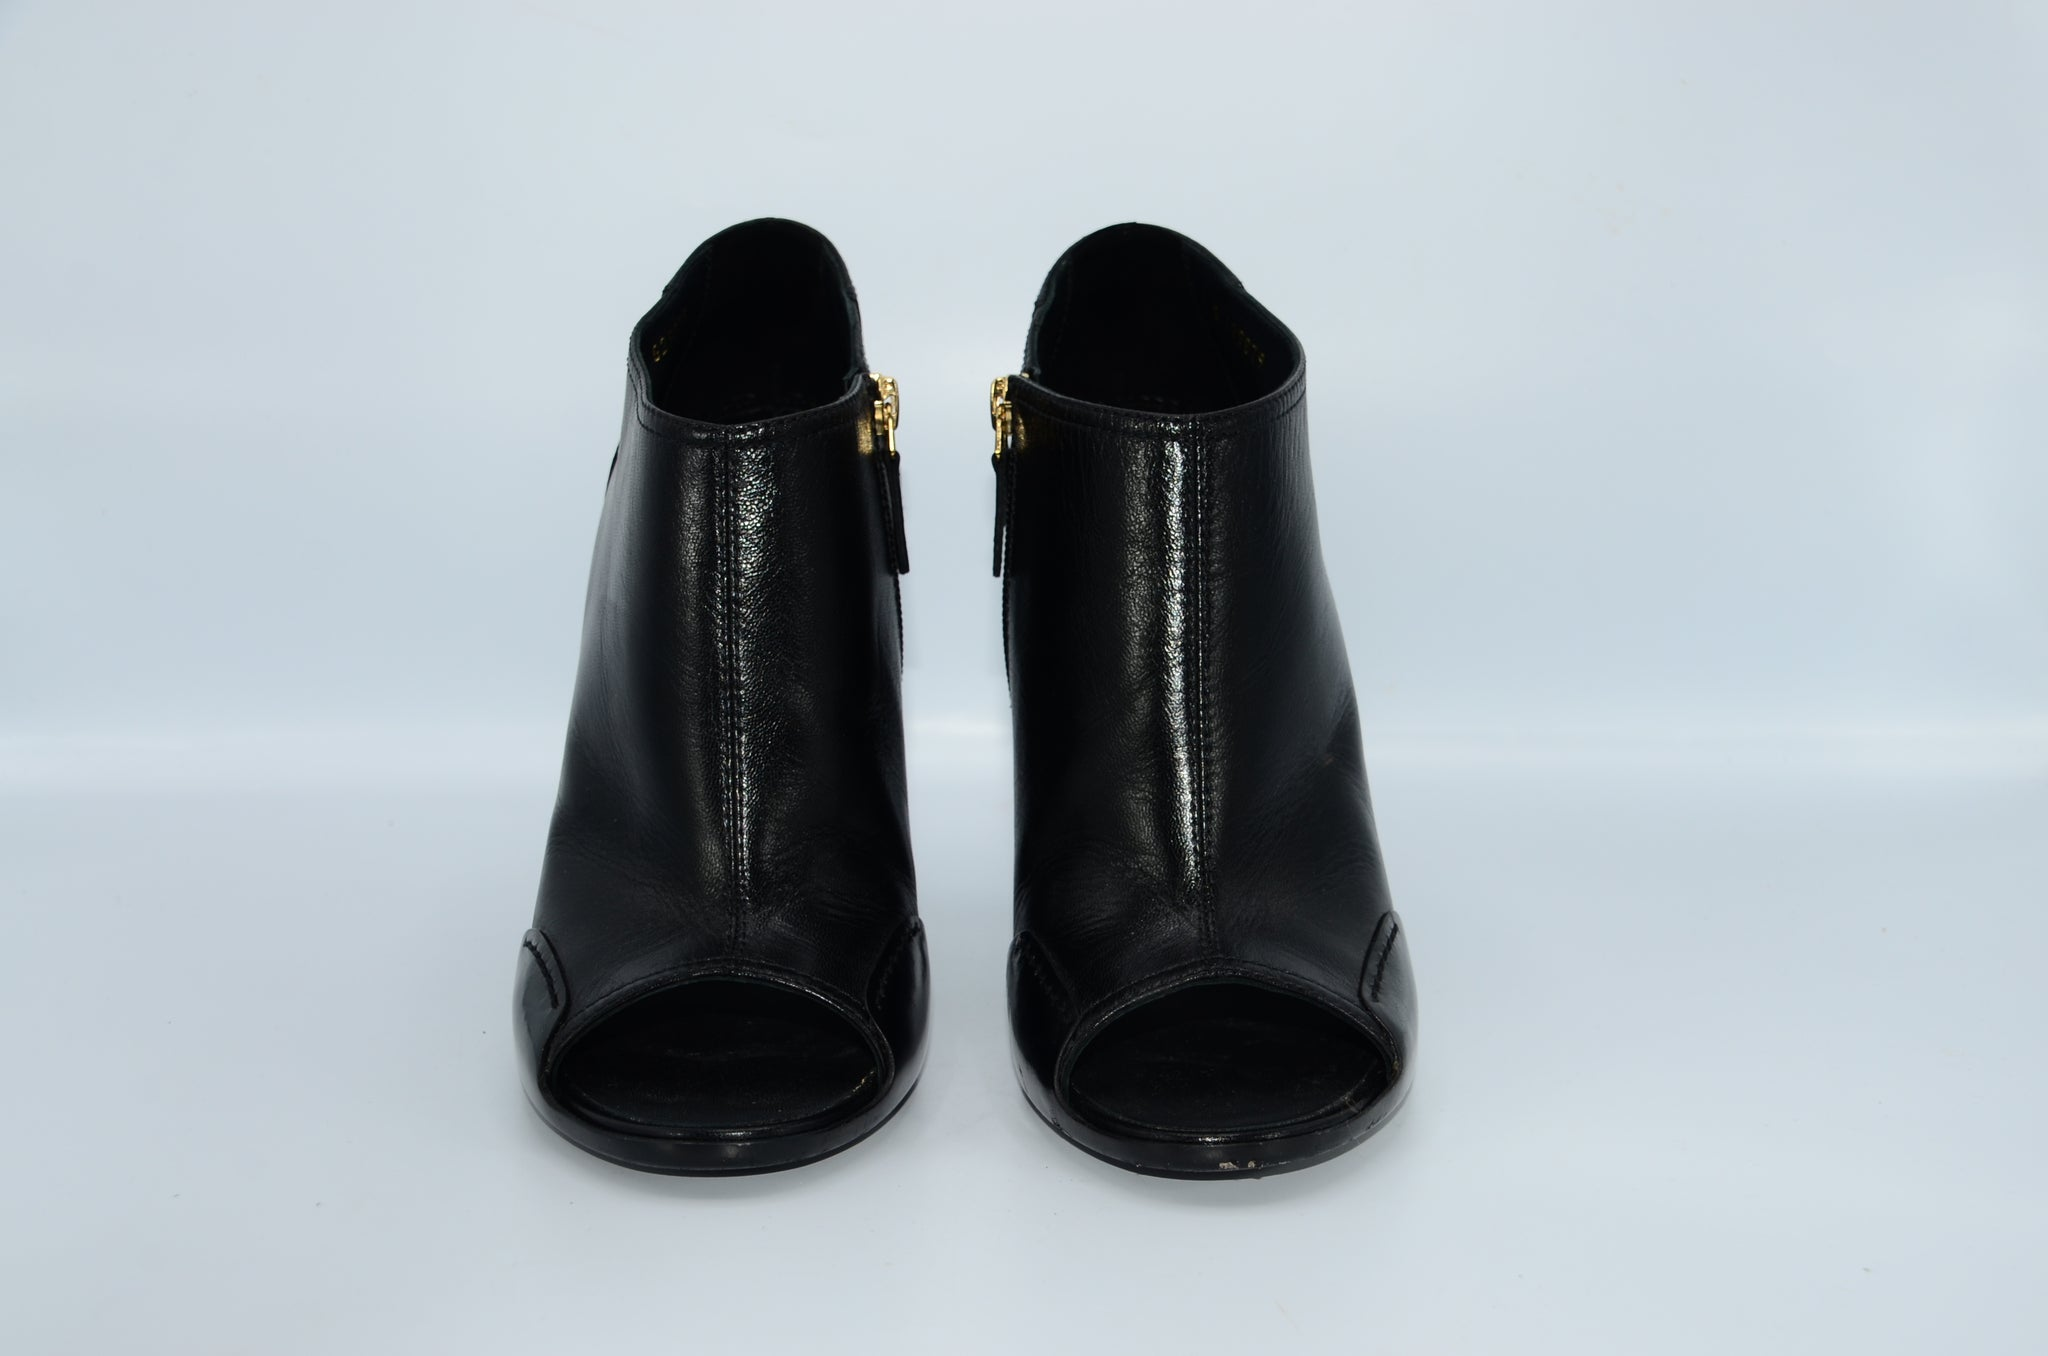 Chanel Open toe boots 39 - Iconics Preloved Luxury